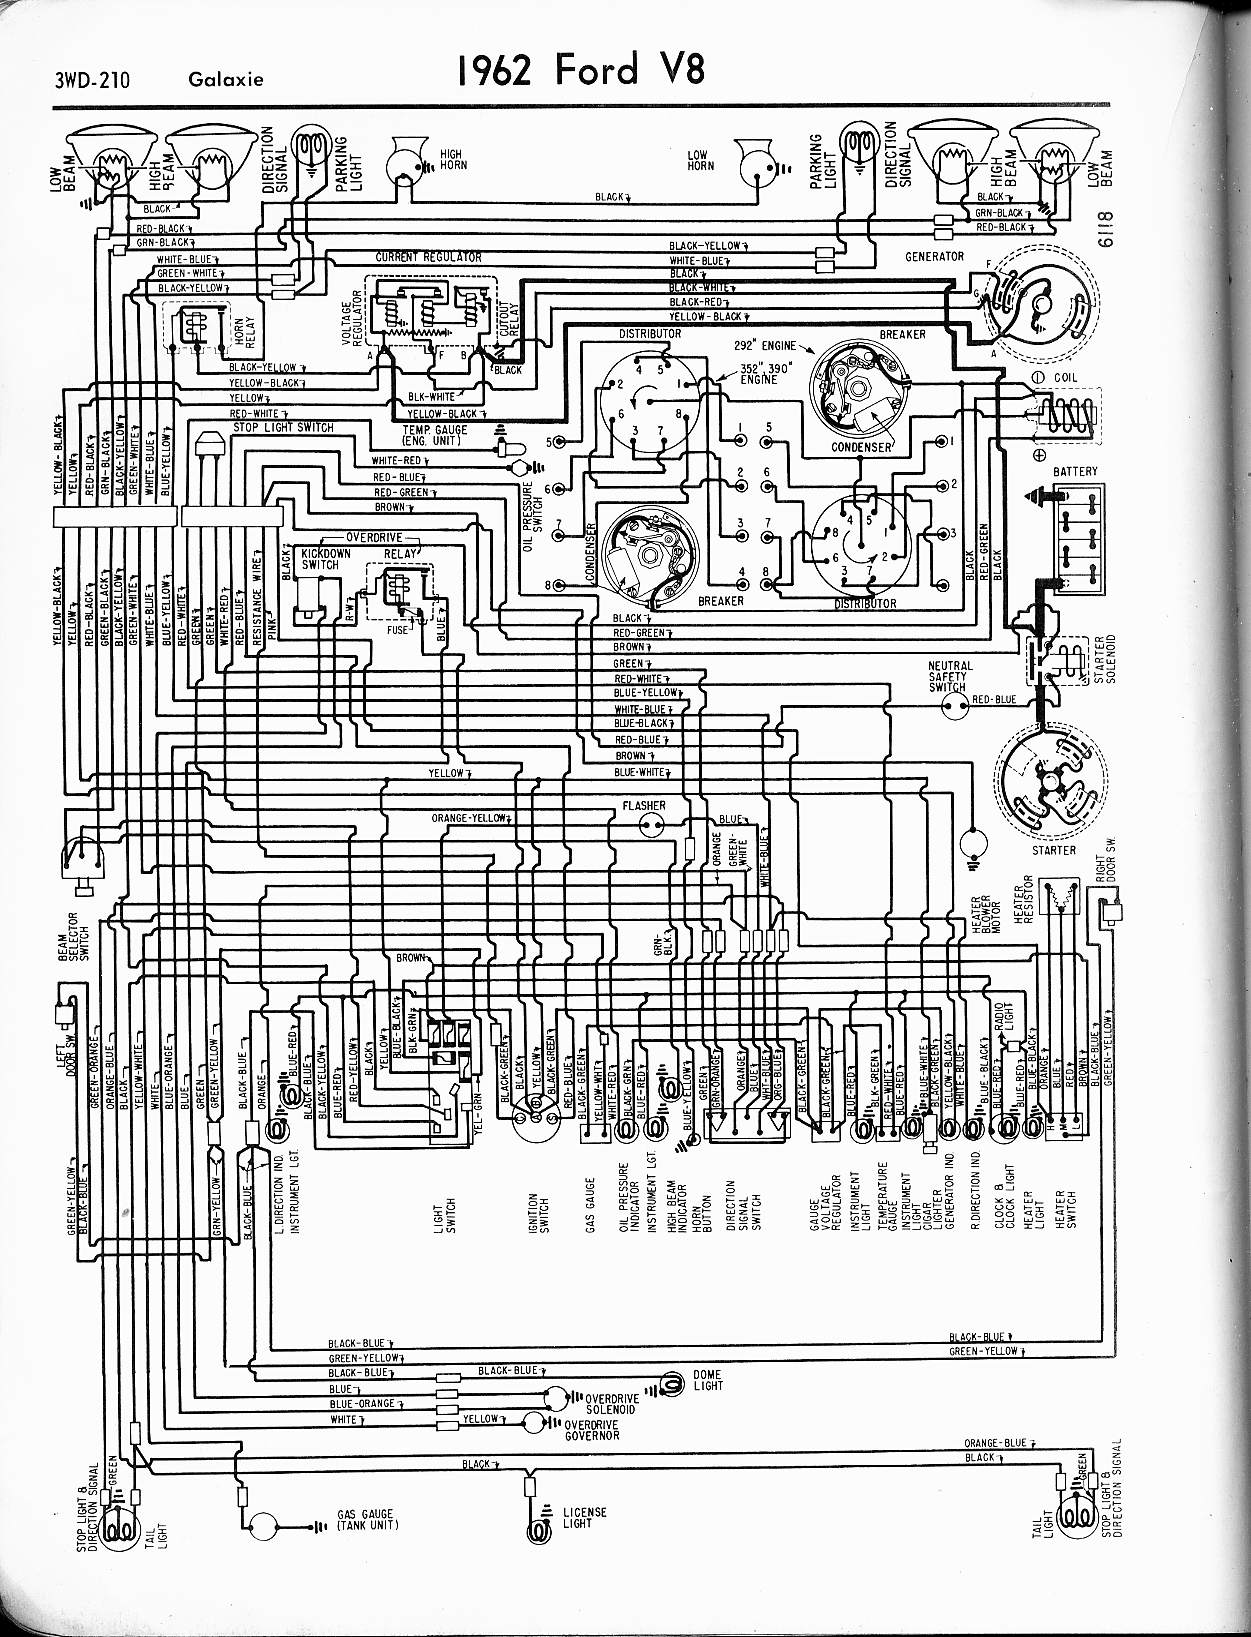 1965 ford galaxie 500 wiring diagram wiring diagrams folder 1968 ford galaxie 500 wiring diagram